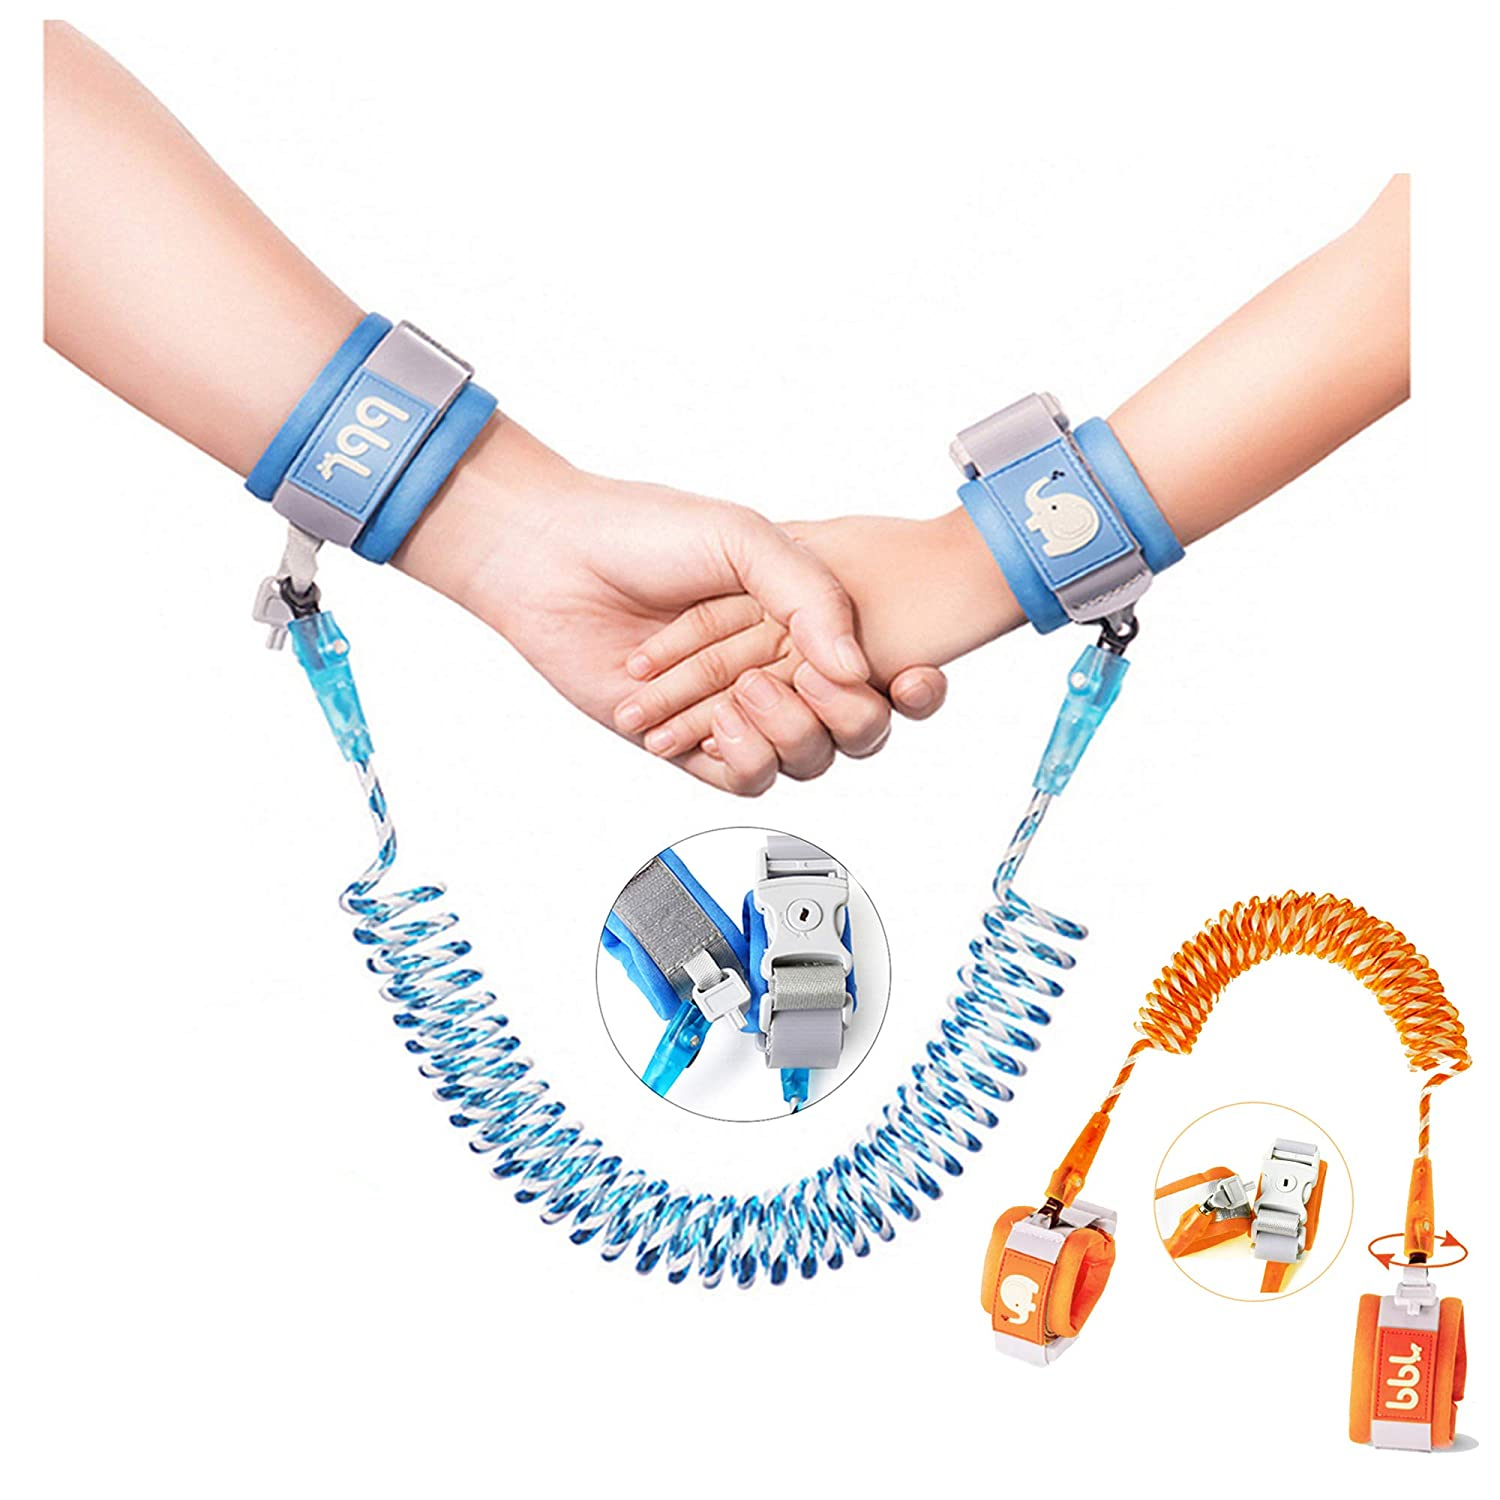 Toddler Harness Walking Leash- Child Anti Lost Wrist Link - Child Safety Harness - Upgrade with Reflective Blue(8.2ft) and Orange(4.9ft)- for Boys and Girls,Not Easy to Open Without Key